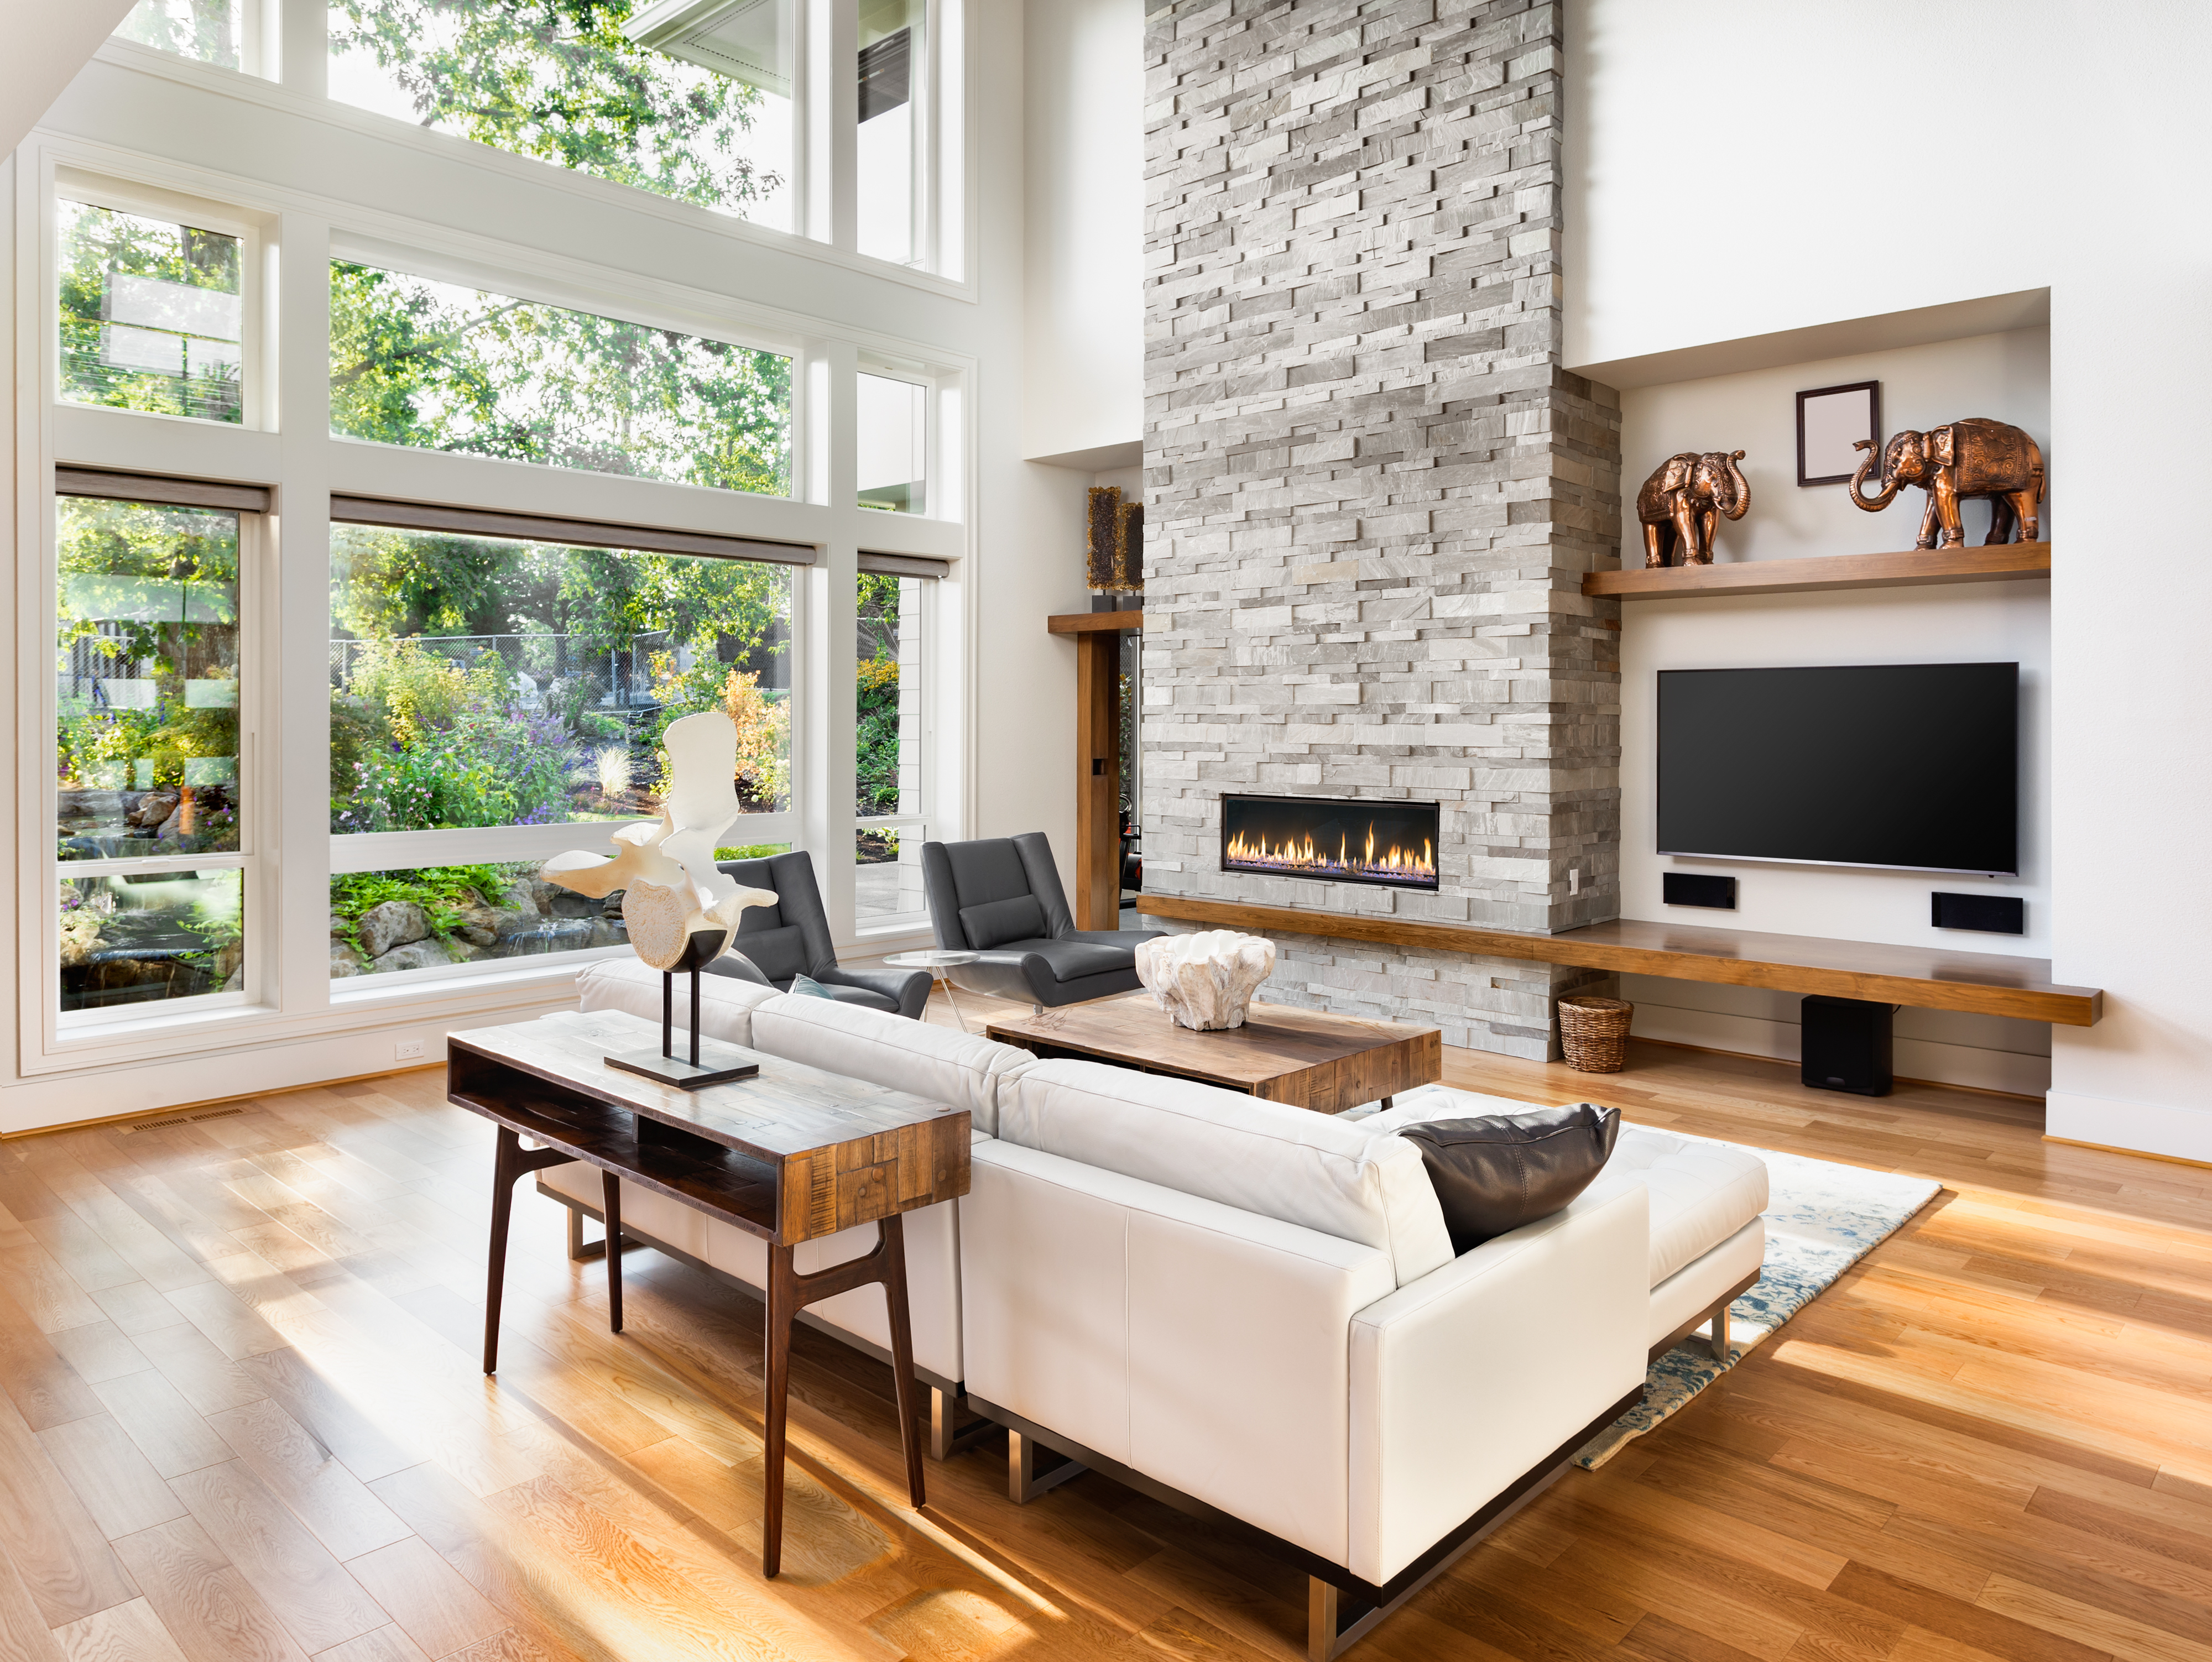 Beautiful living room interior with hardwood floors and roaring fire in fireplace in new luxury home